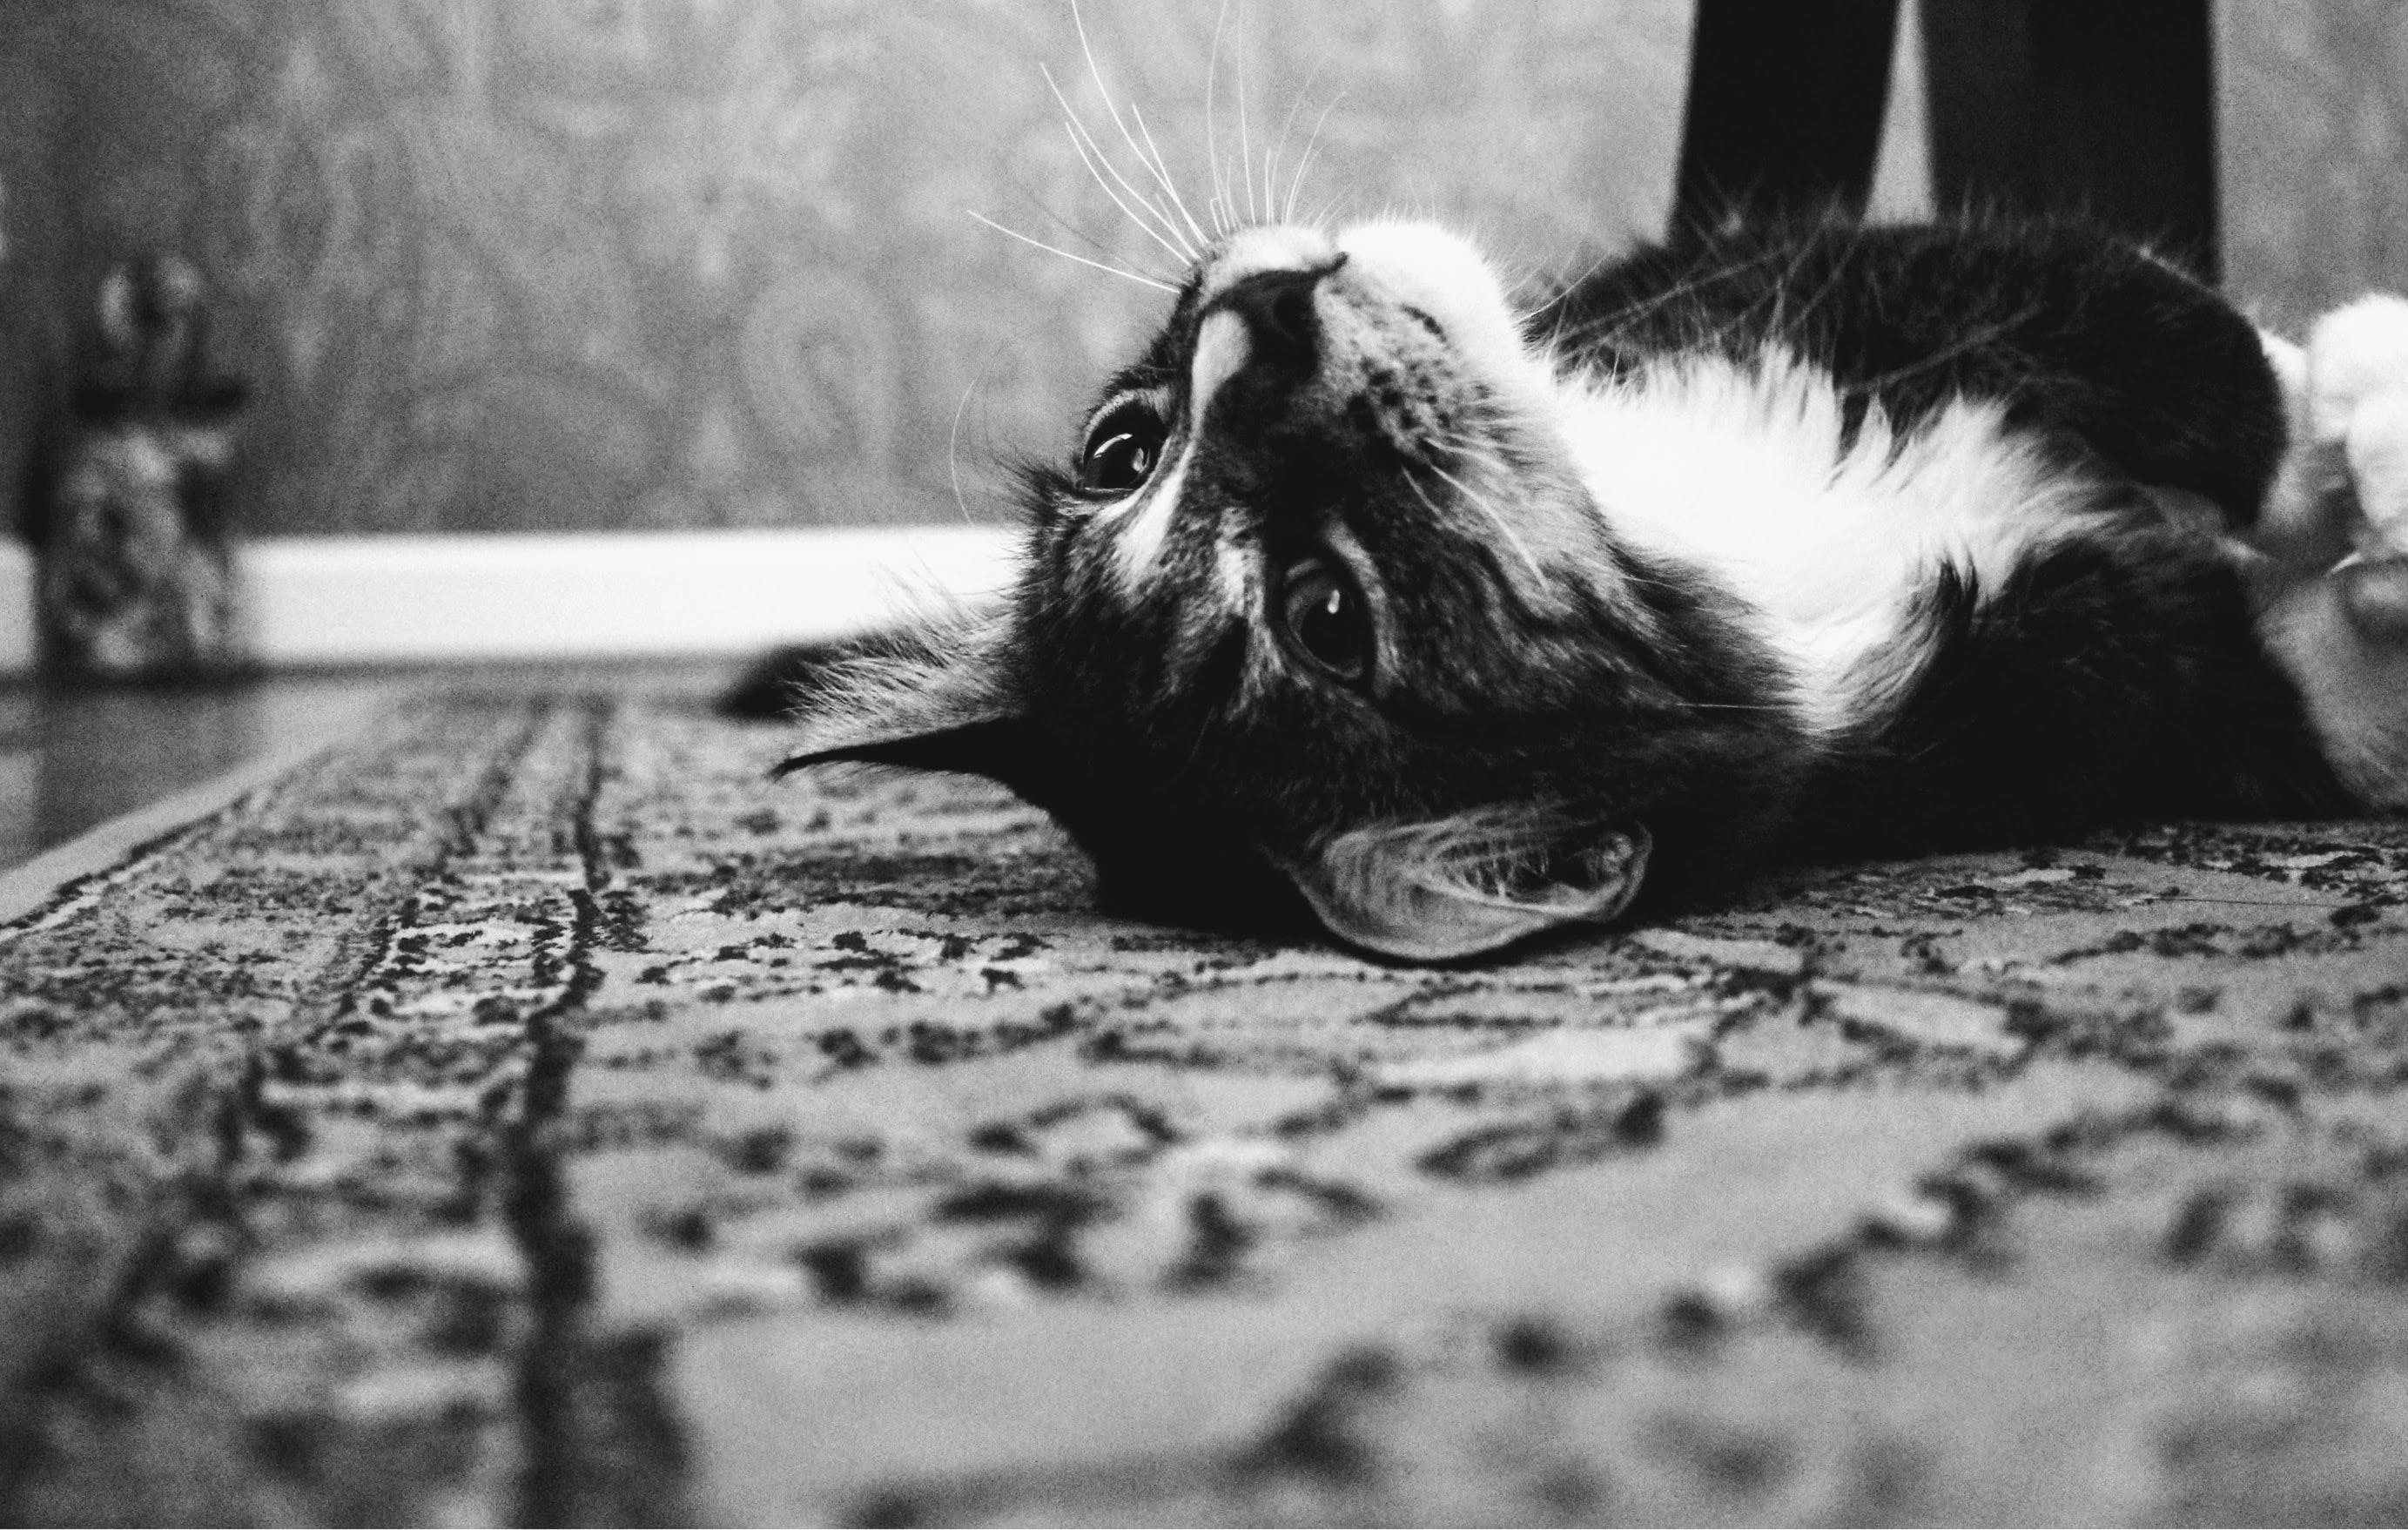 Photo of Tuxedo Cat Laying on Rug